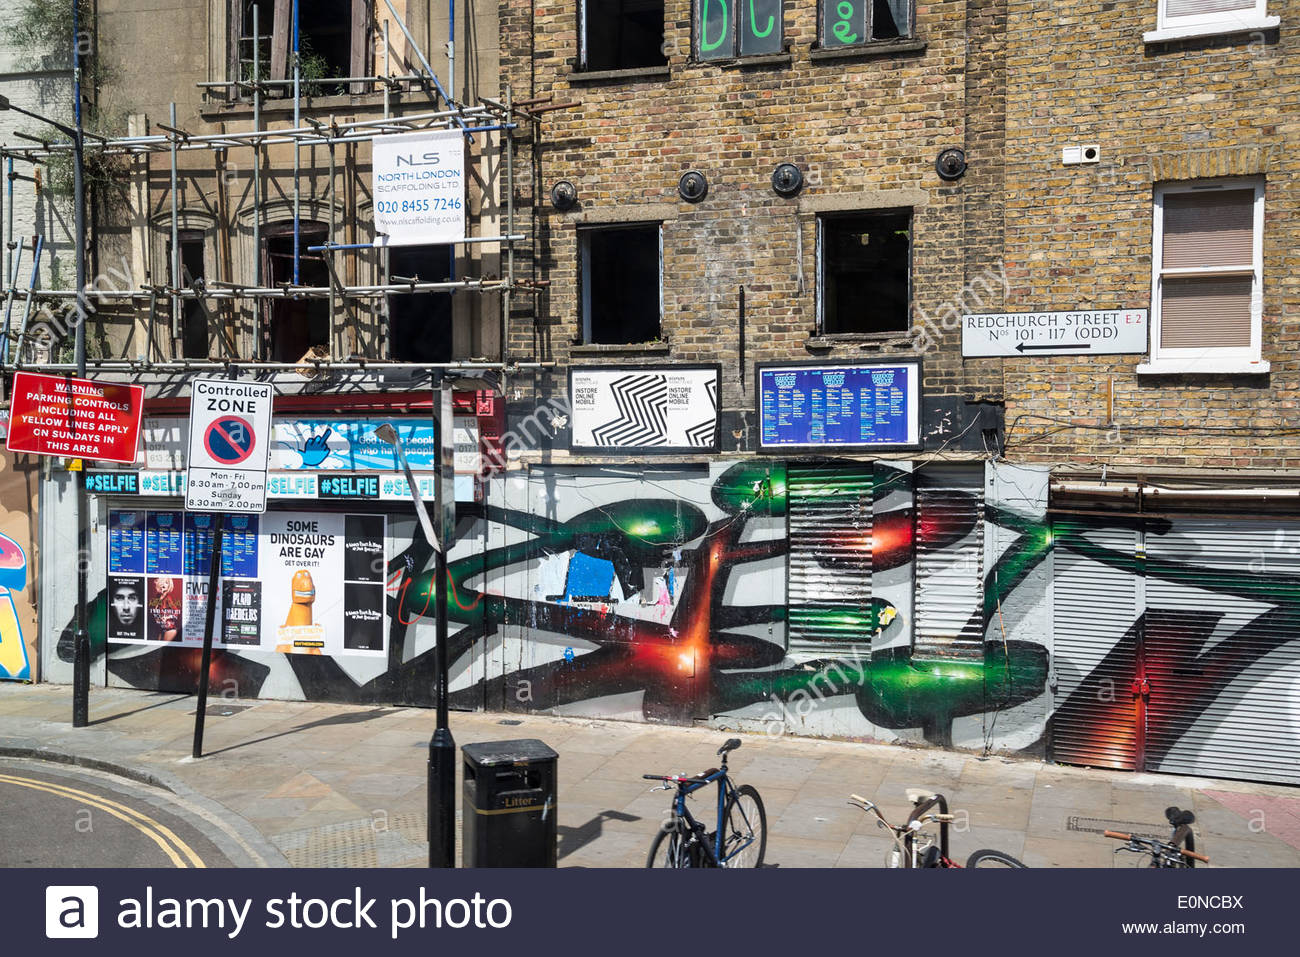 Graffiti and construction work, Bethnal Green Road, Shoreditch,, East London, - Stock Image